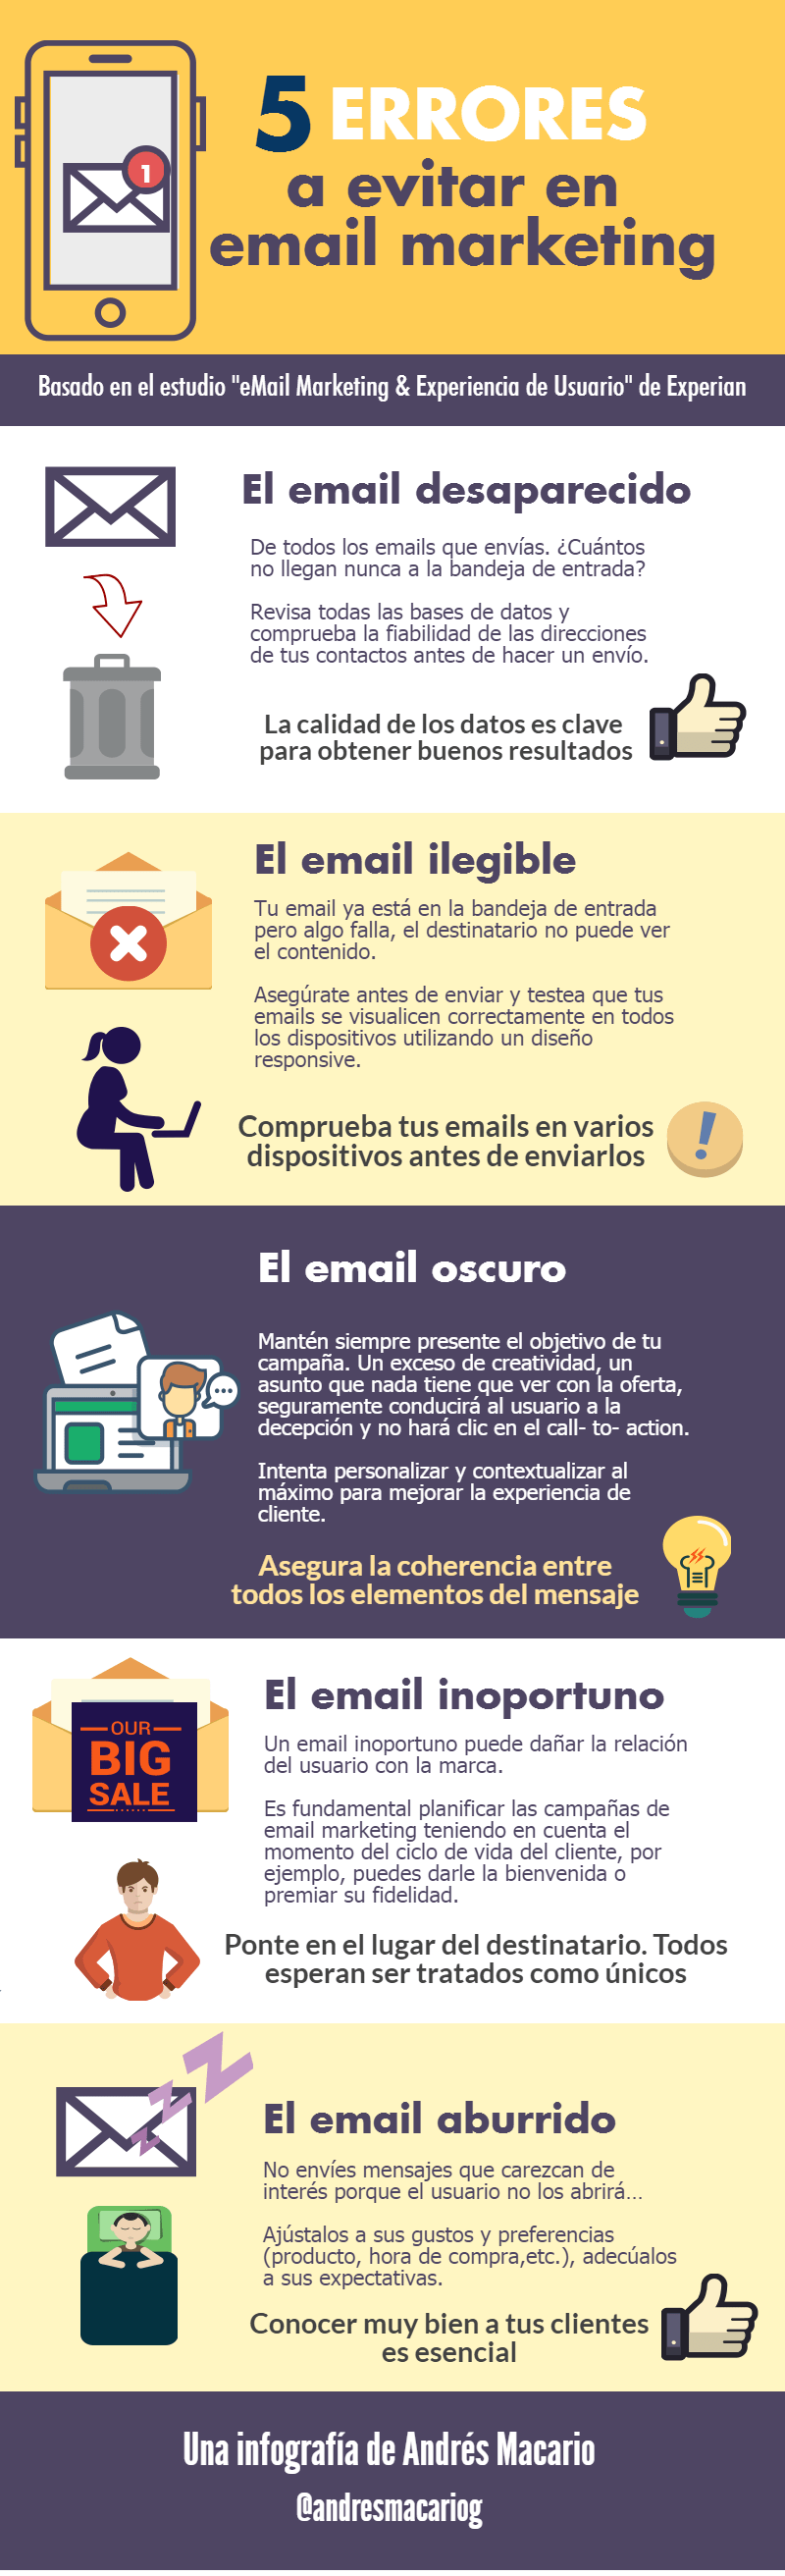 5 errores a evitar en email marketing - Infografia Andres Macario